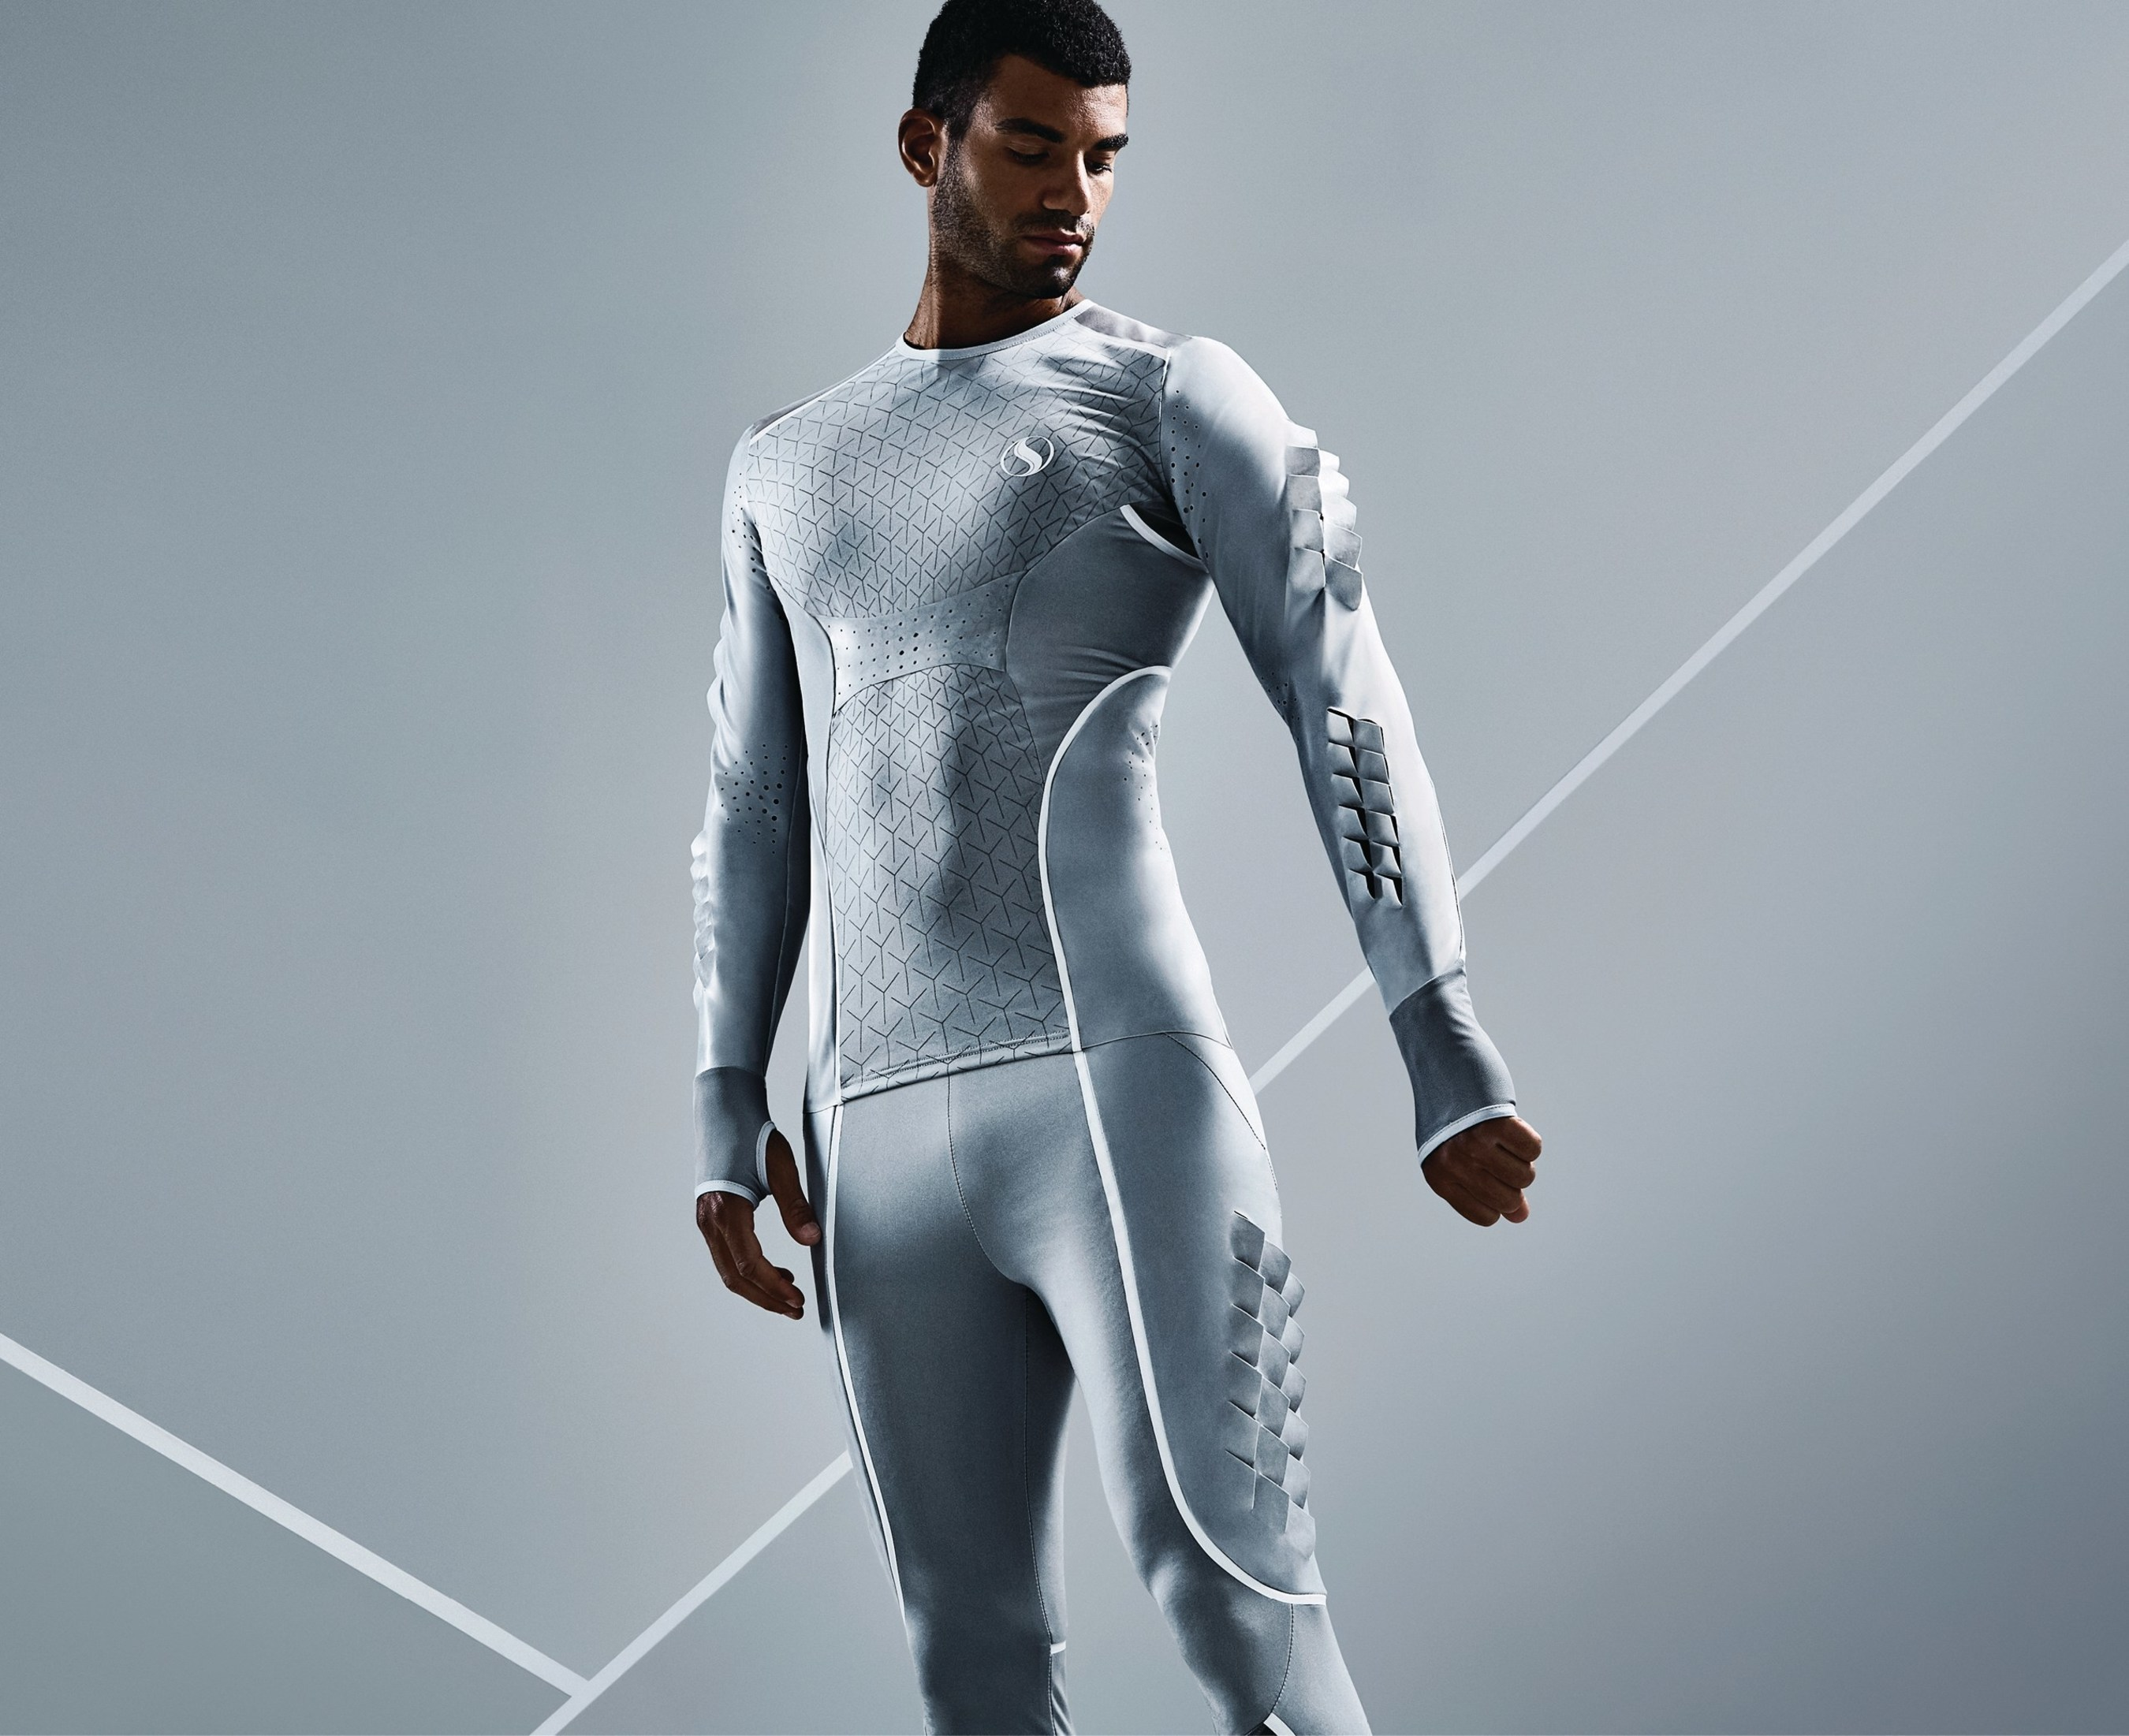 SKYN(r) Condoms Experiments In Sports Performance Apparel